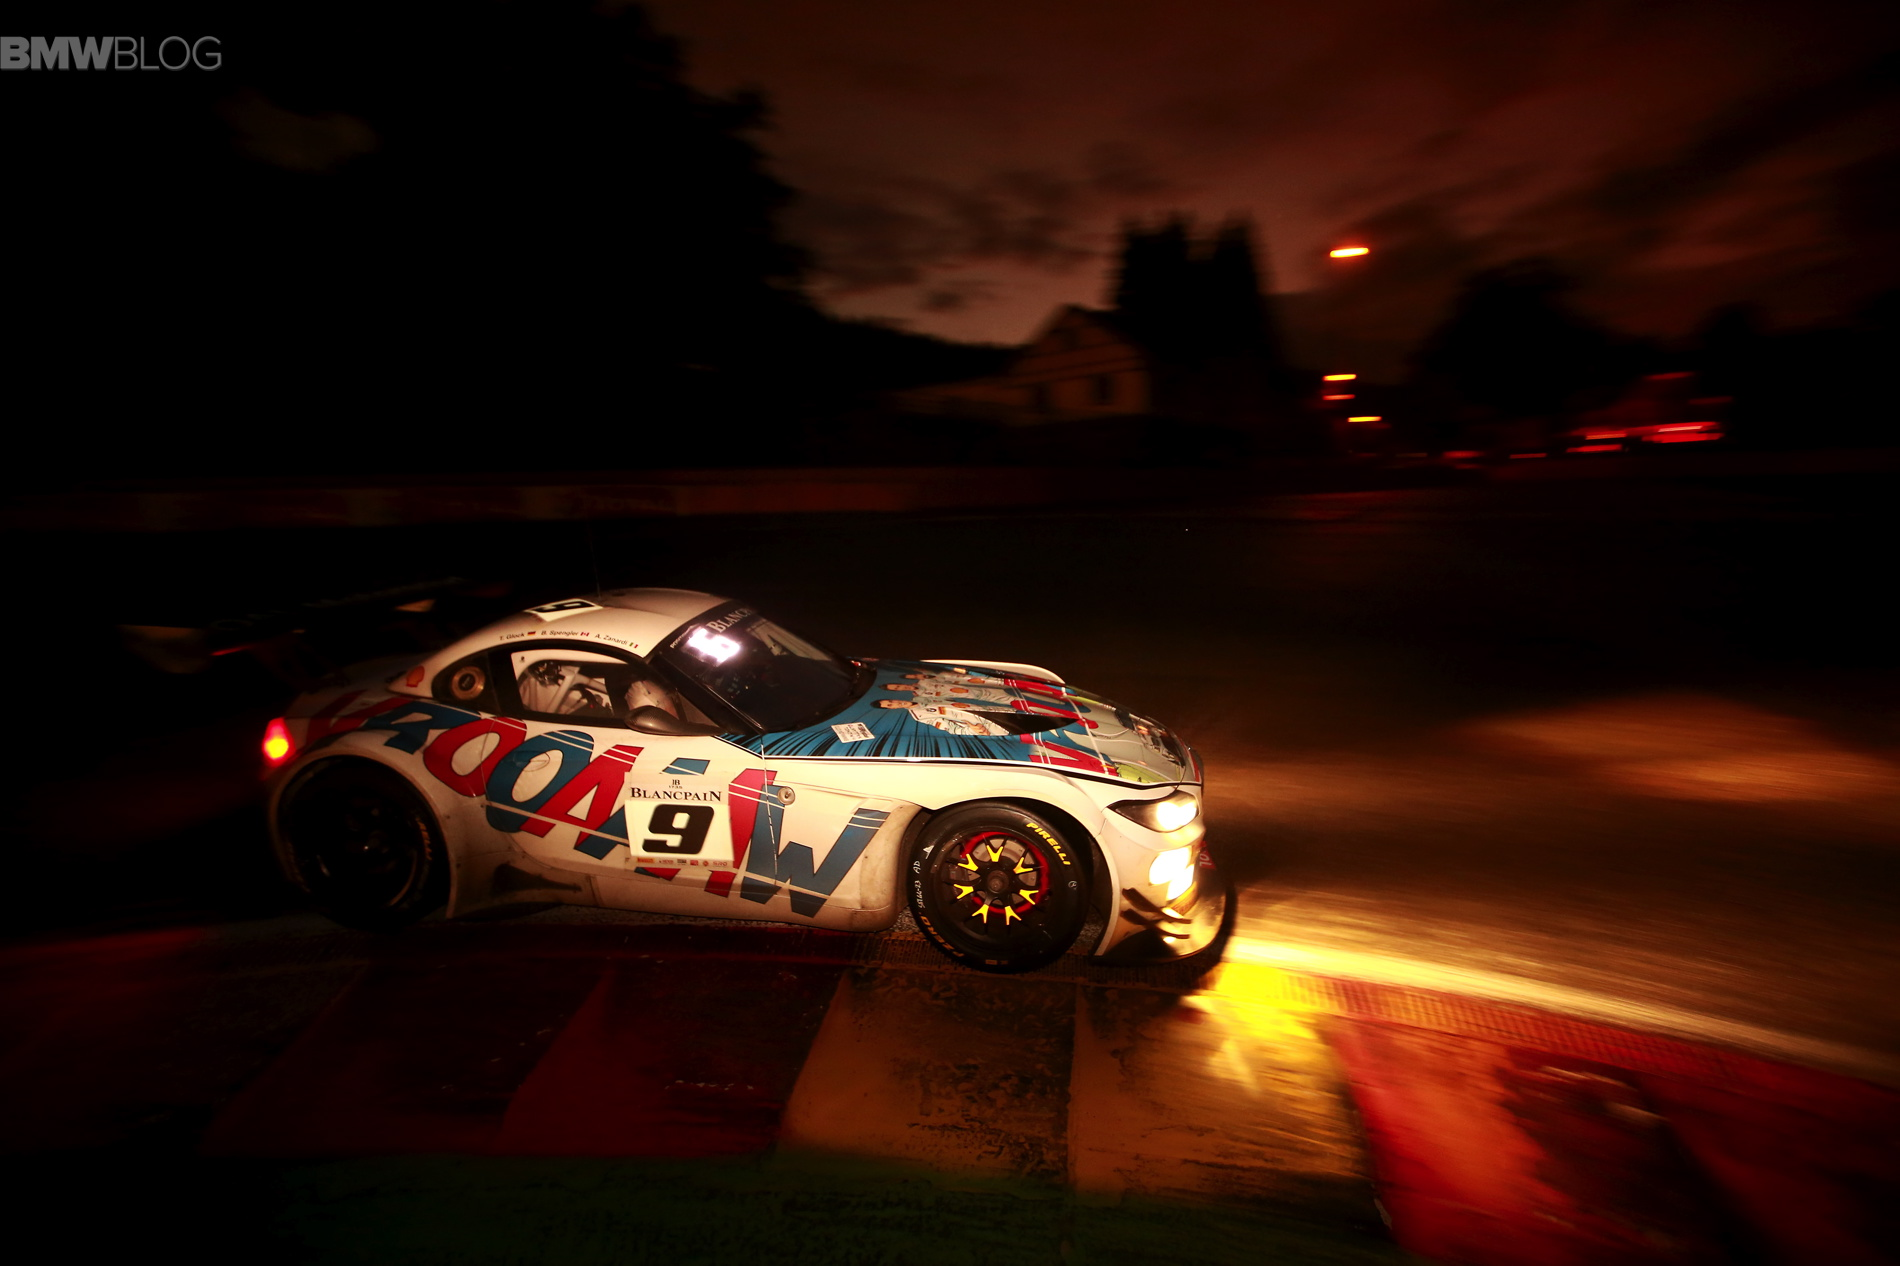 24h Spa Spa 24 Hours bmw images 04